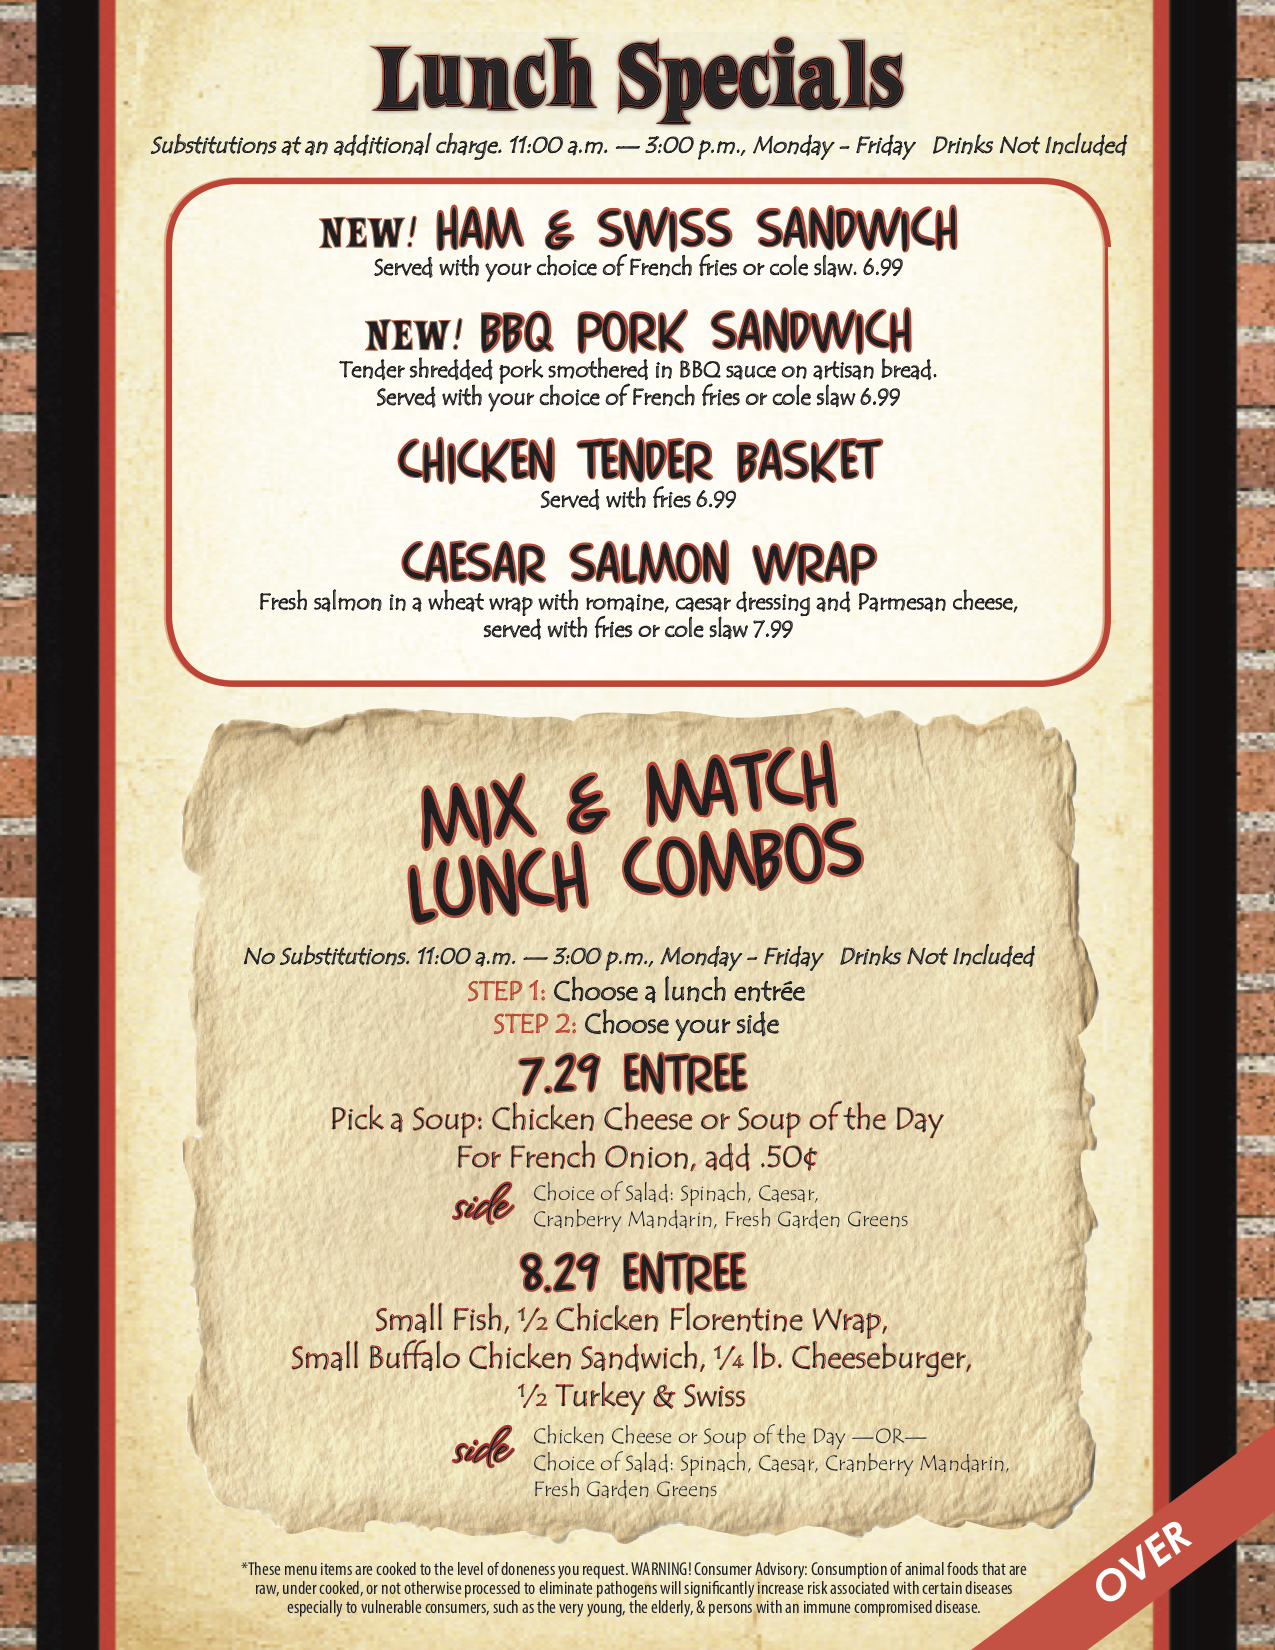 Lunch Specials & Mix & Match Lunch Combos